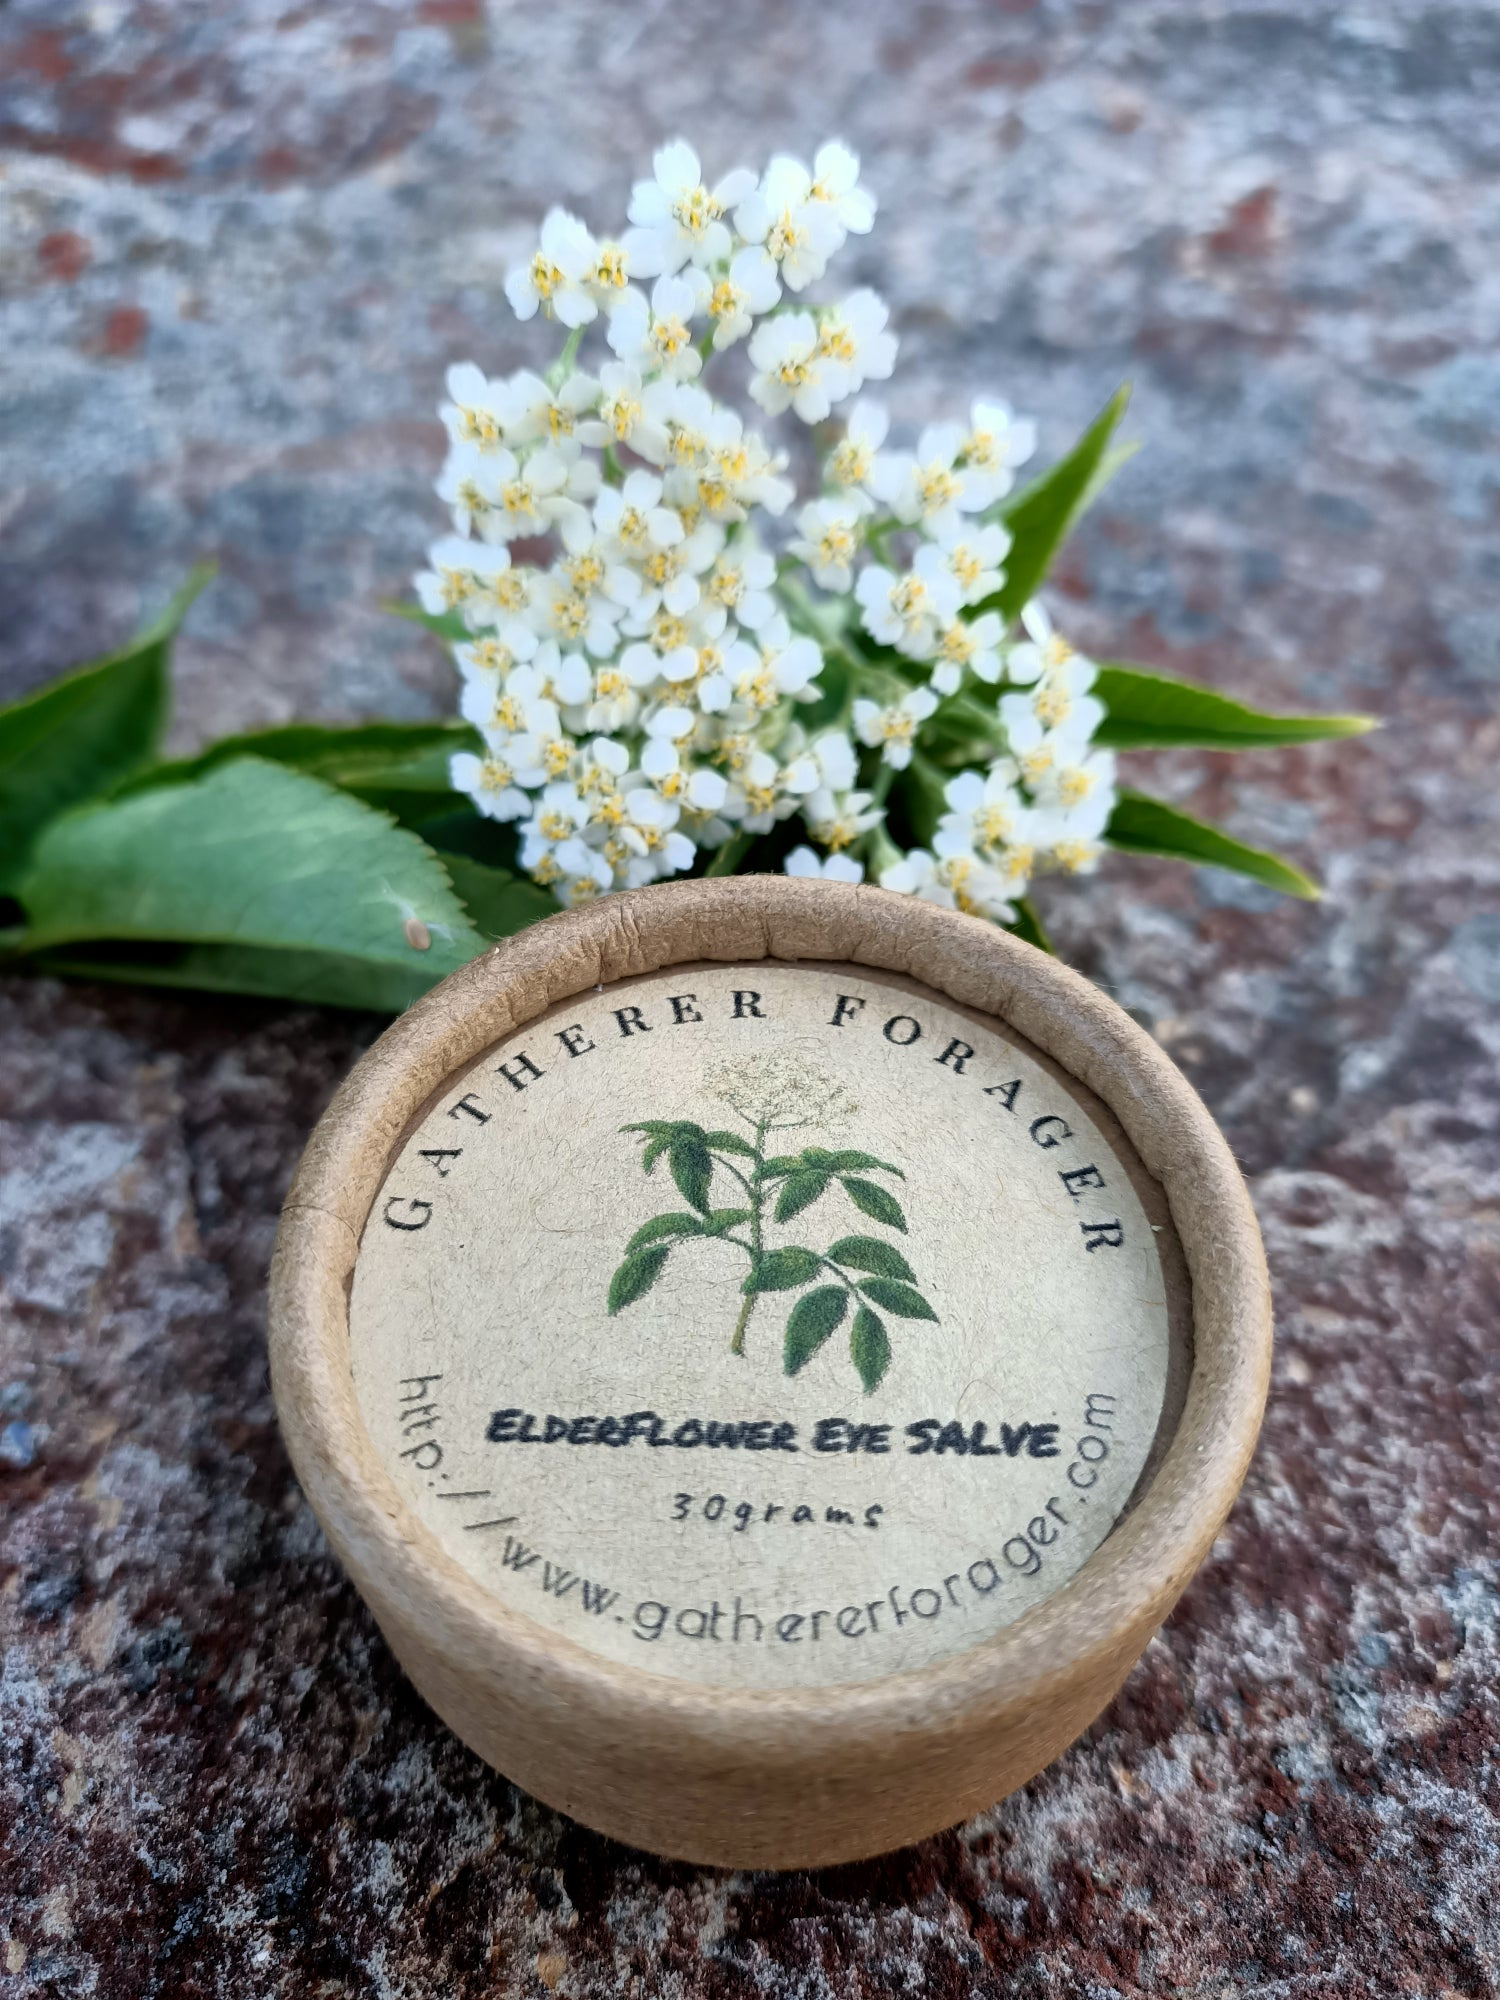 Image of Elderflower Eye salve